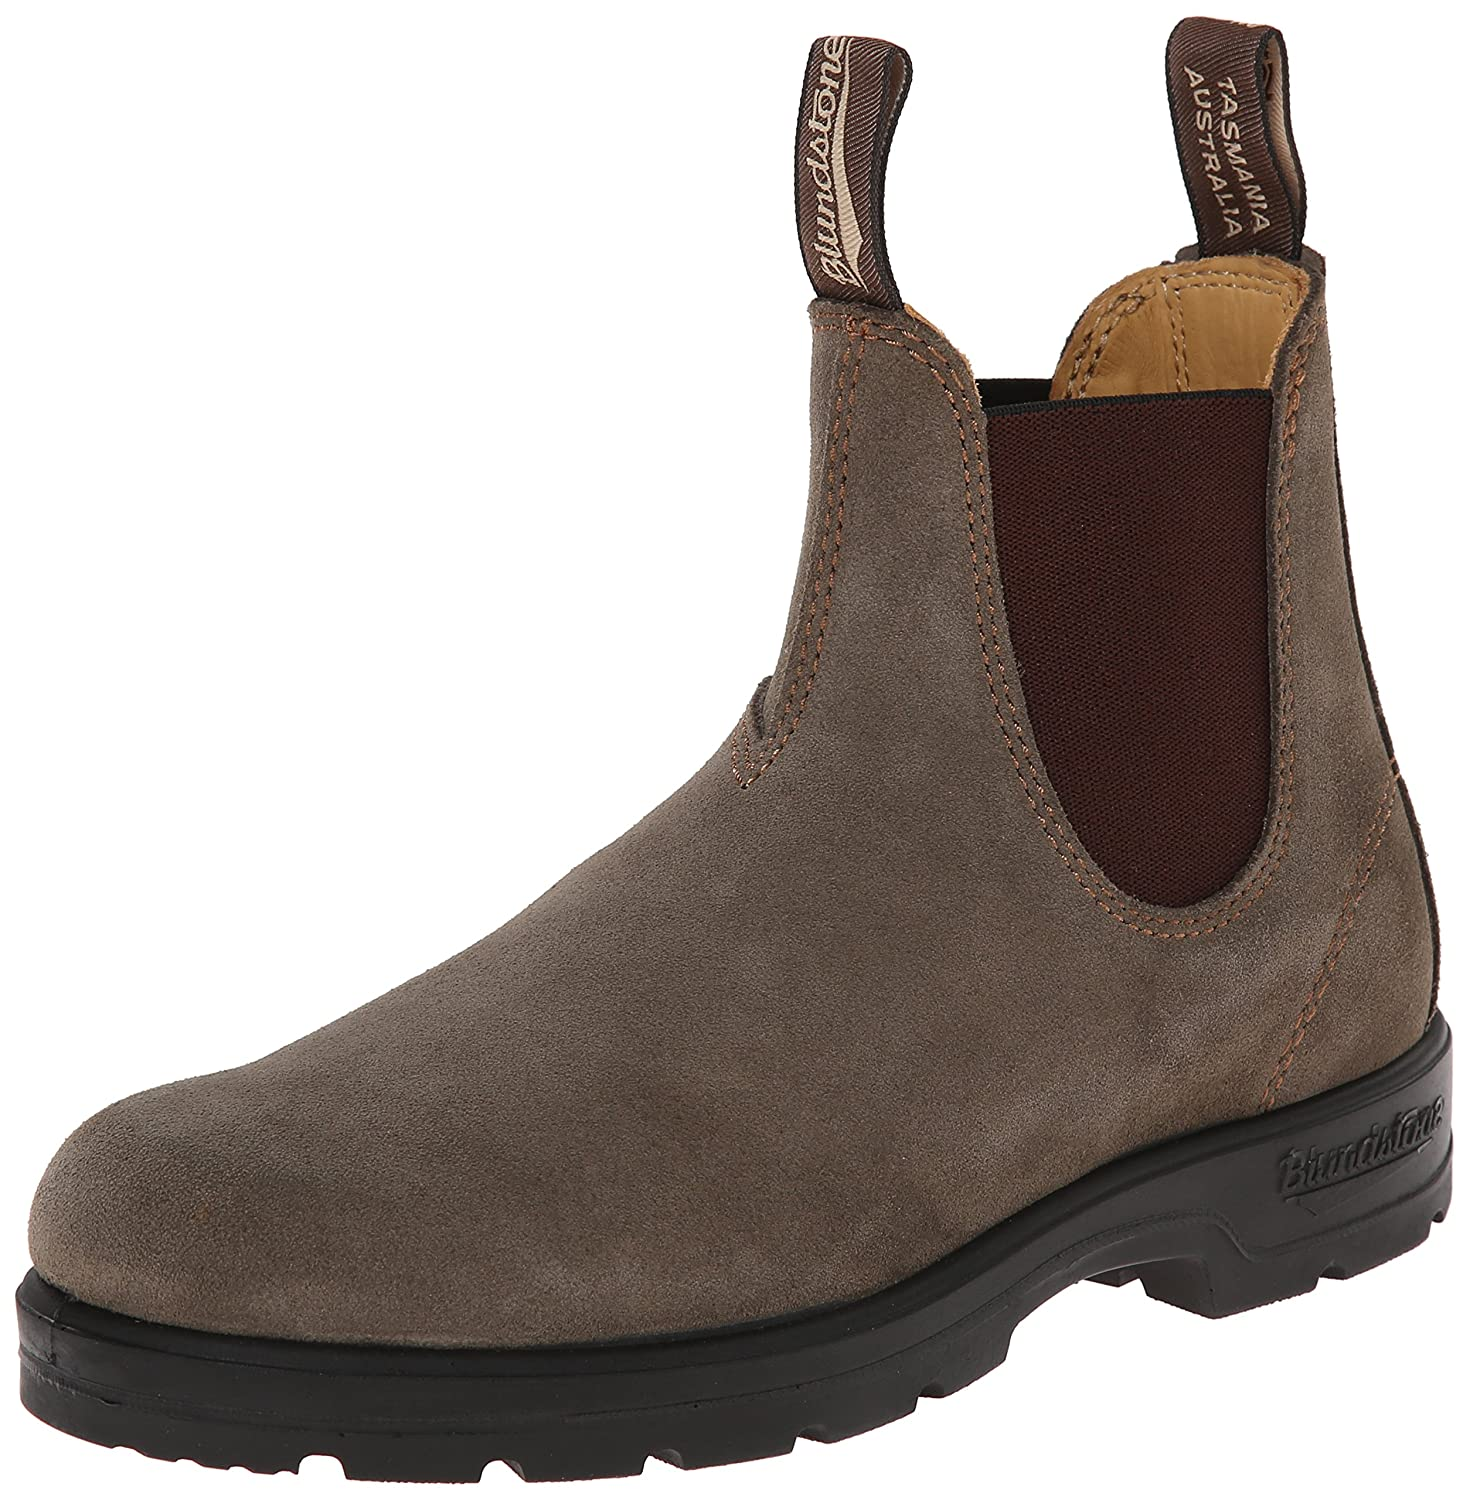 Blundstone Winter Boot Blundstone 552 Slip on Boot